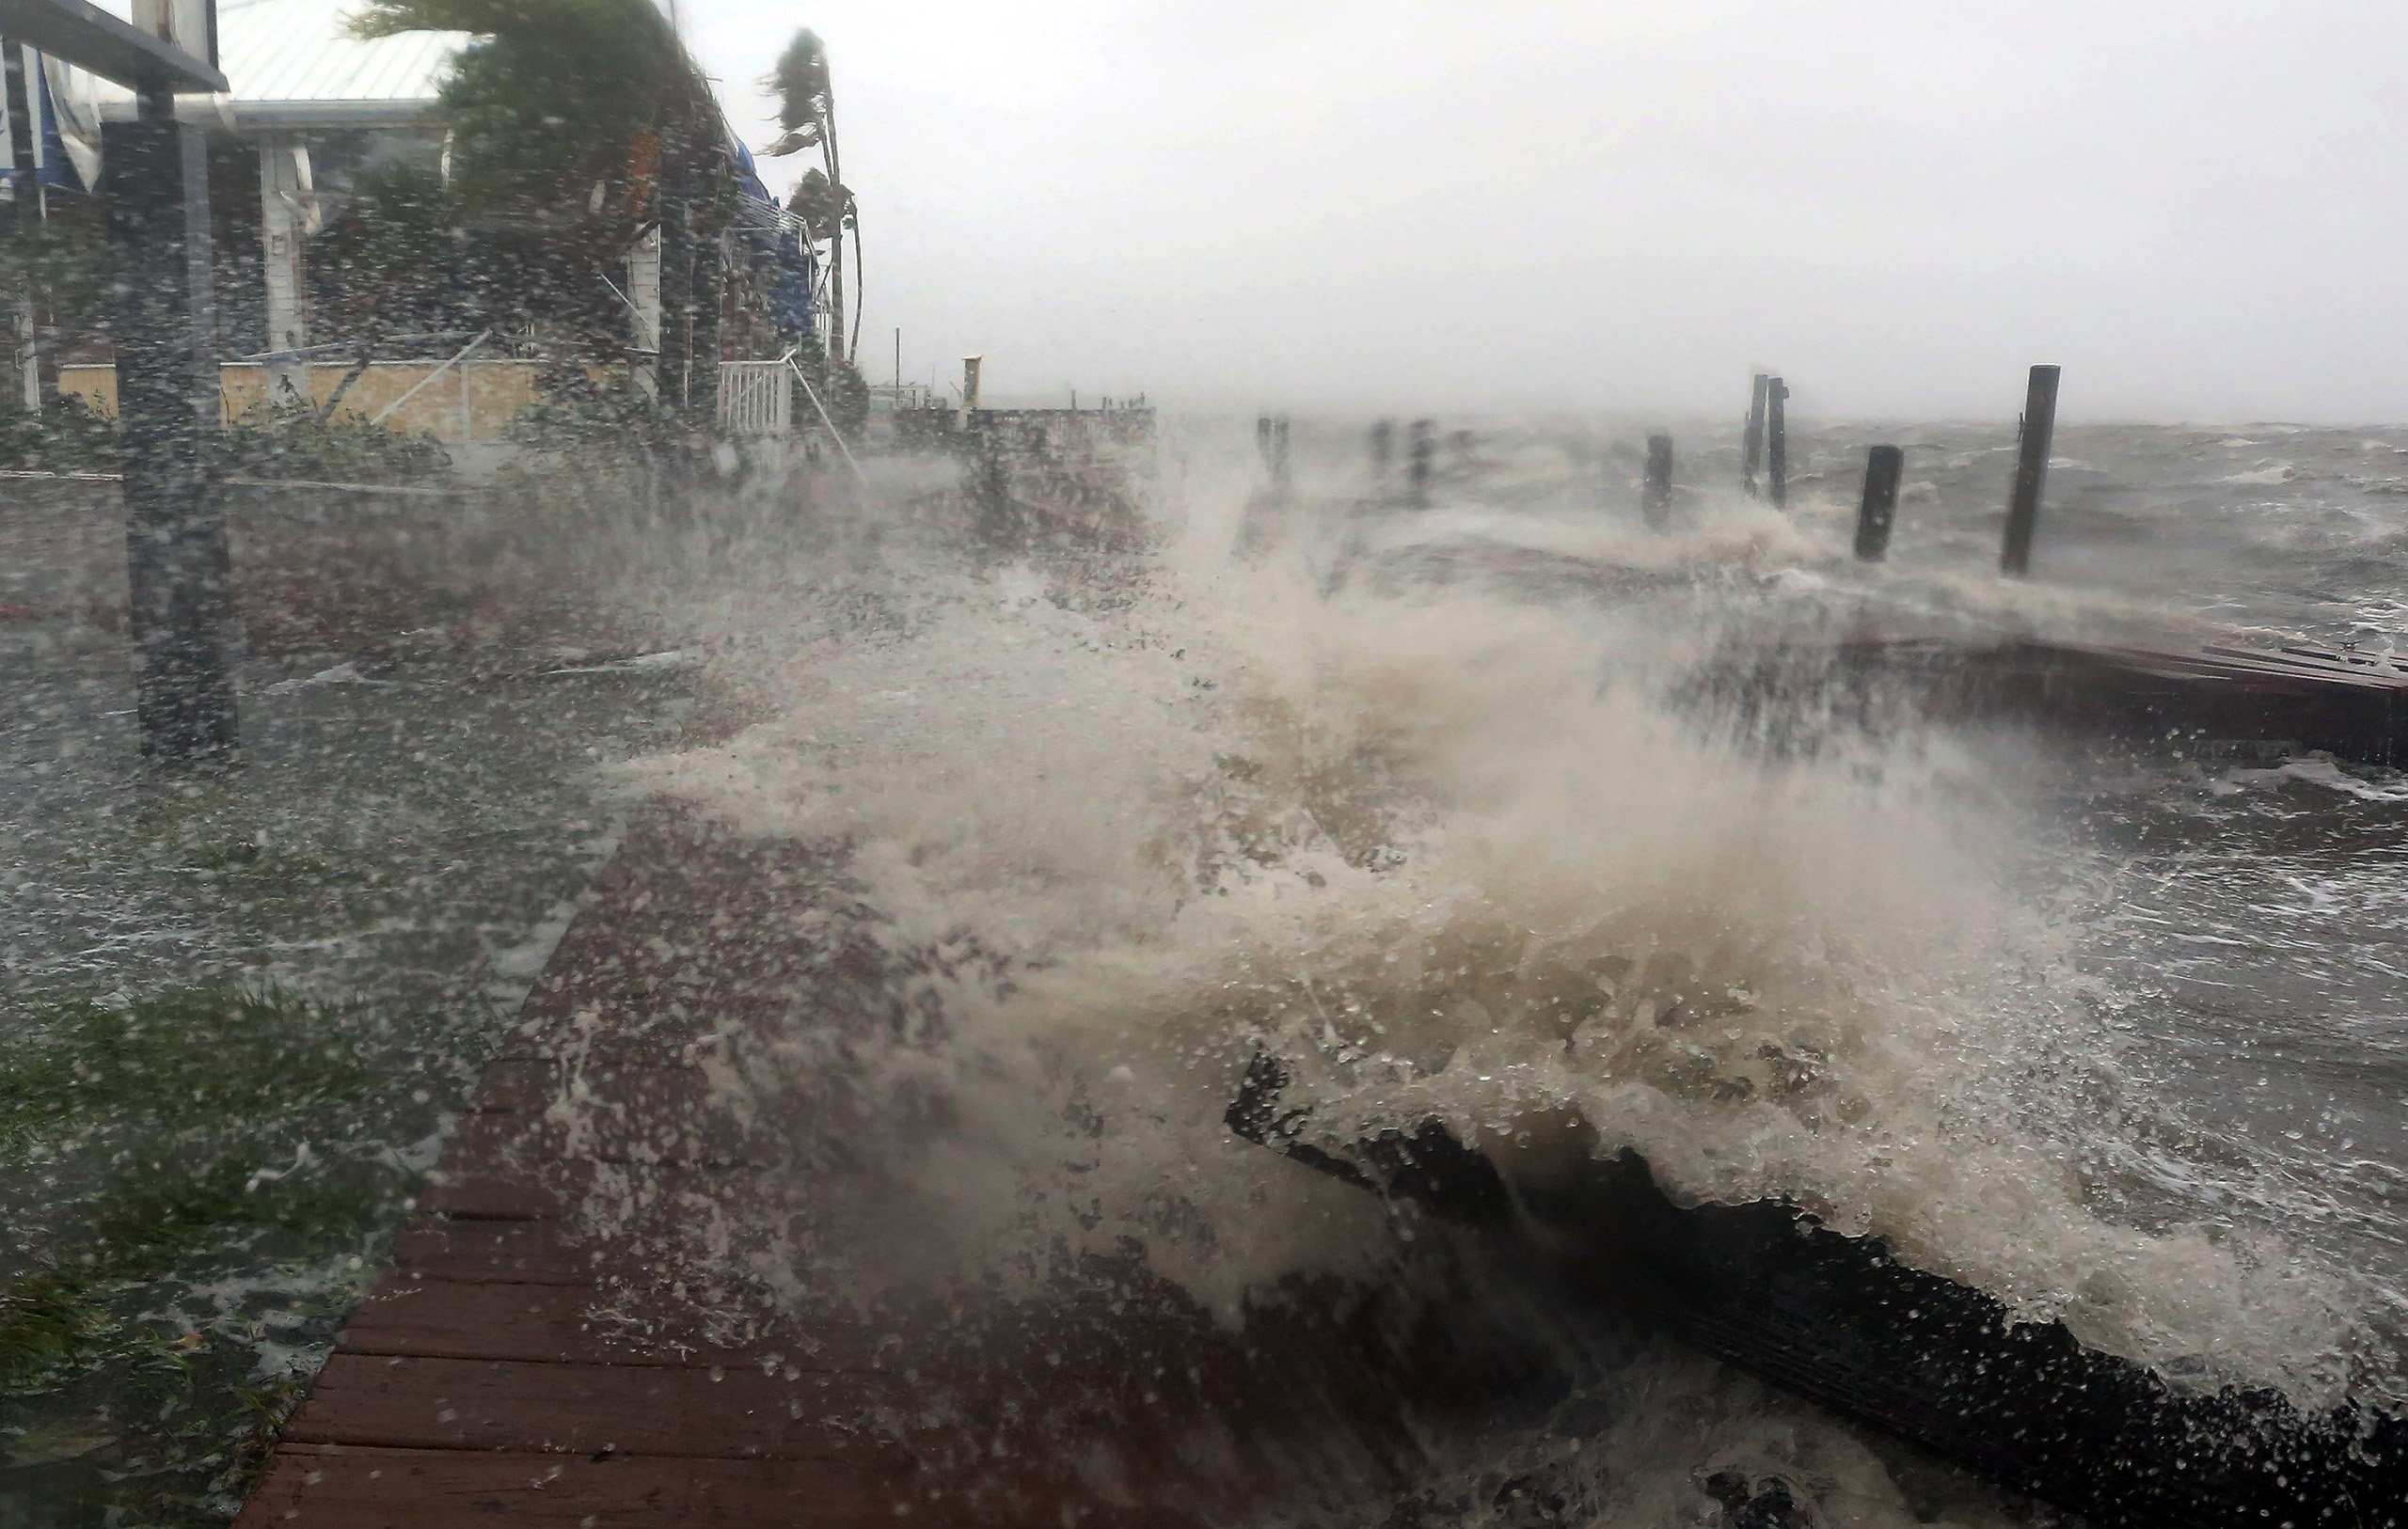 Surf from the Banana River crashes up on a dock at Sunset Grill in Cocoa Beach, Fla., as Hurricane Matthew hits Florida's east coast, Oct. 7, 2016.